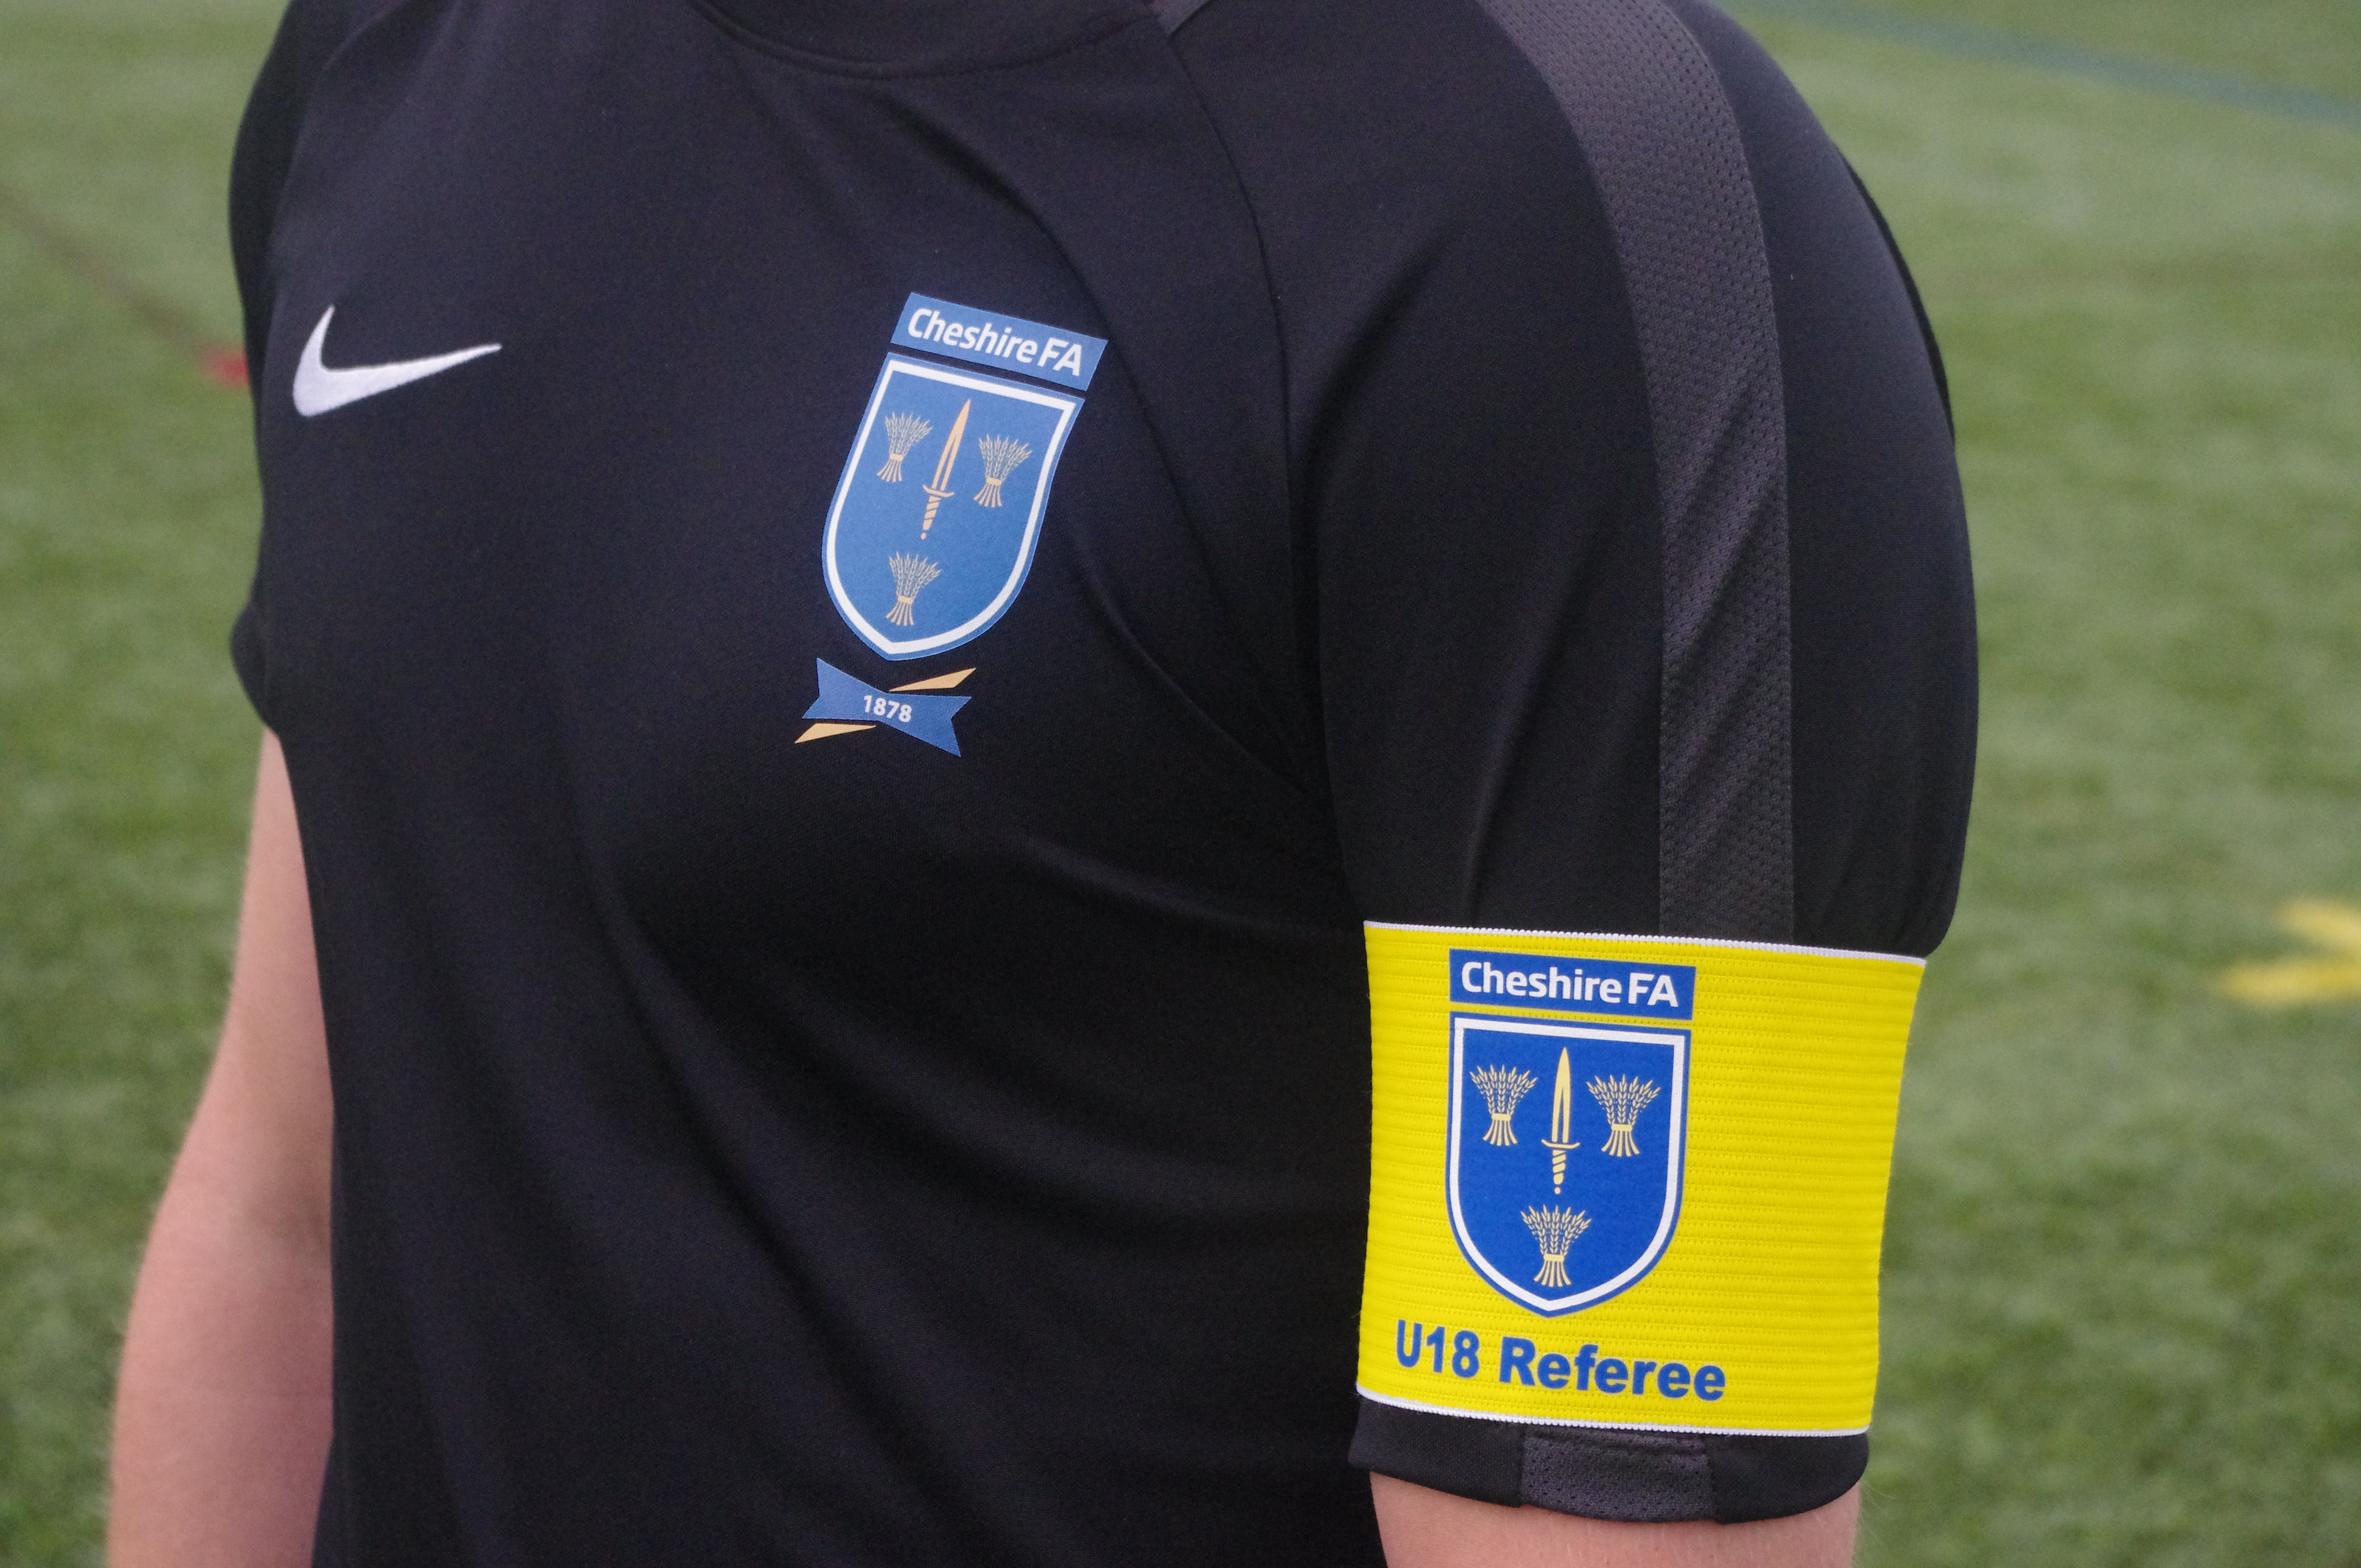 Referee Armband demonstrated